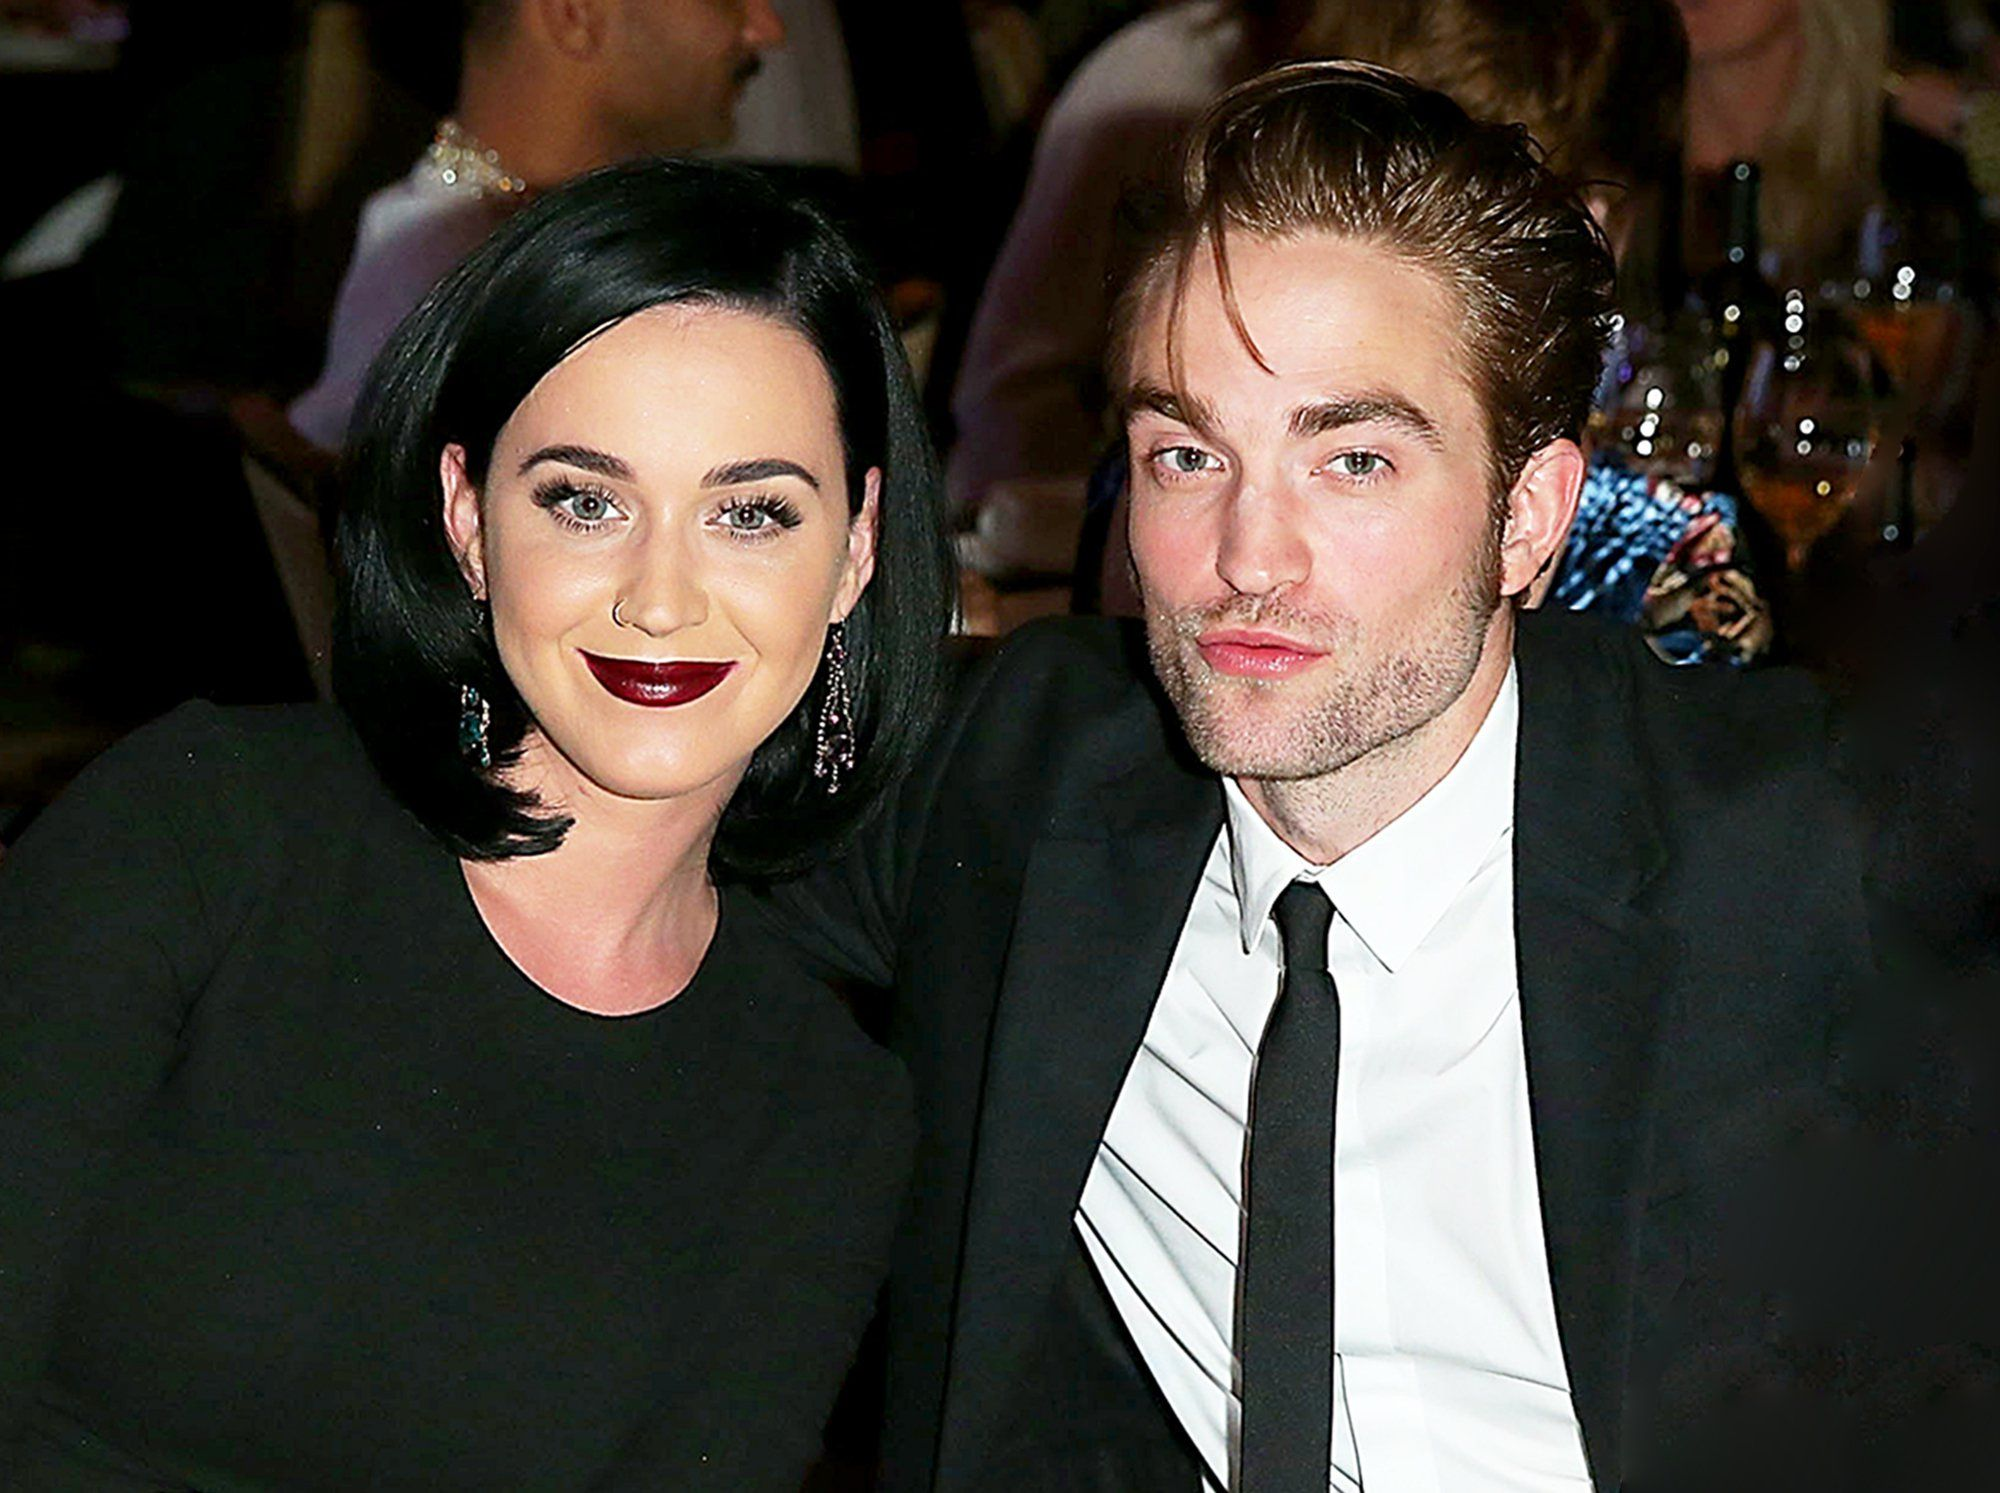 Robert Pattinson And Katy Perry Spotted Making Out